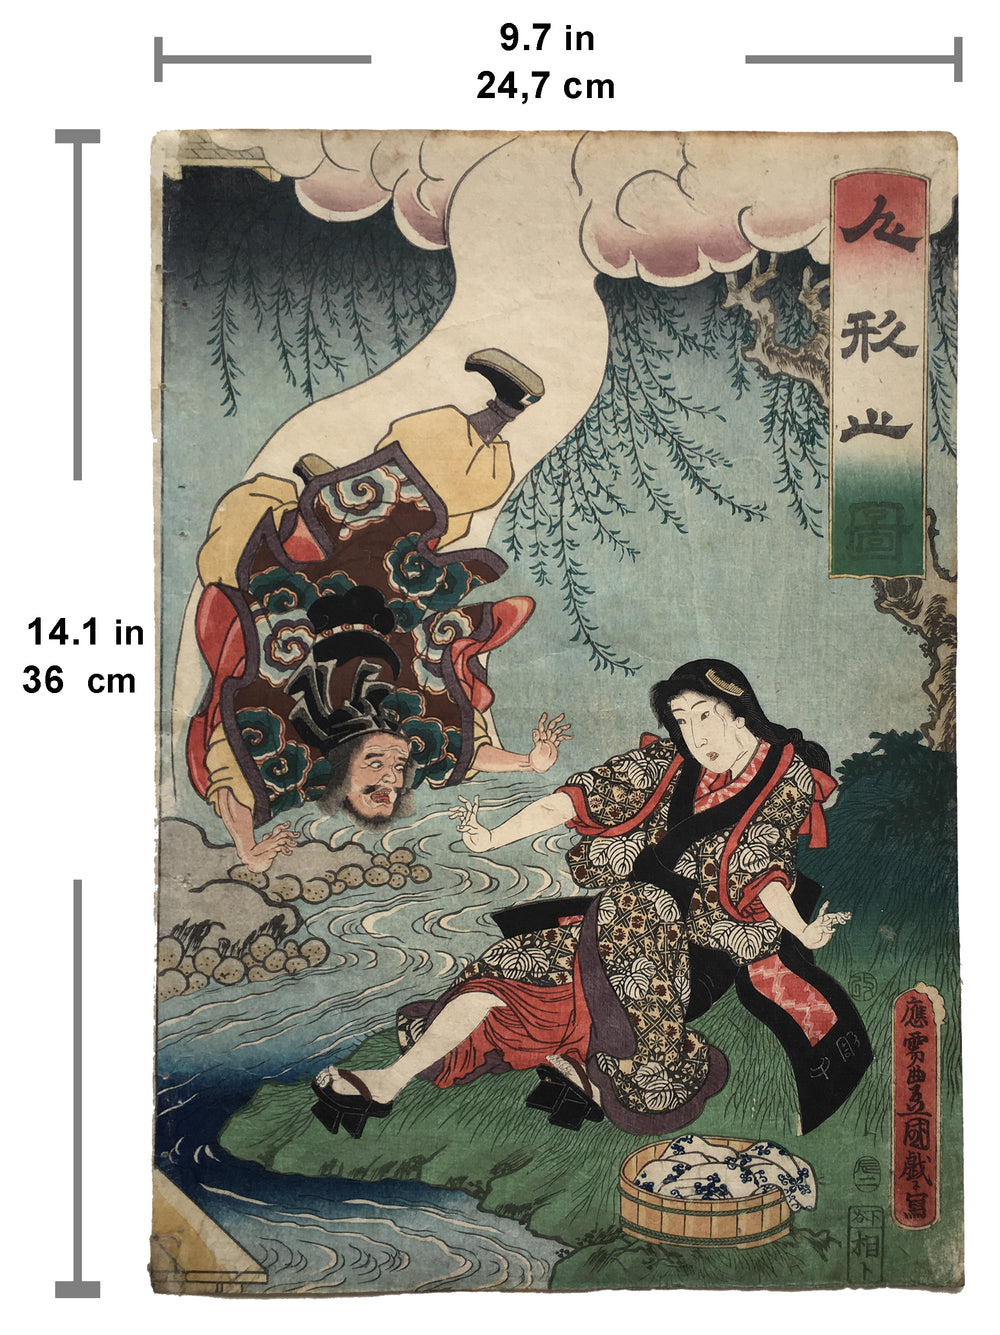 Kume no Sennin, from the series Picture of Dolls (Ningyô no zu), (Kunisada, 1856)